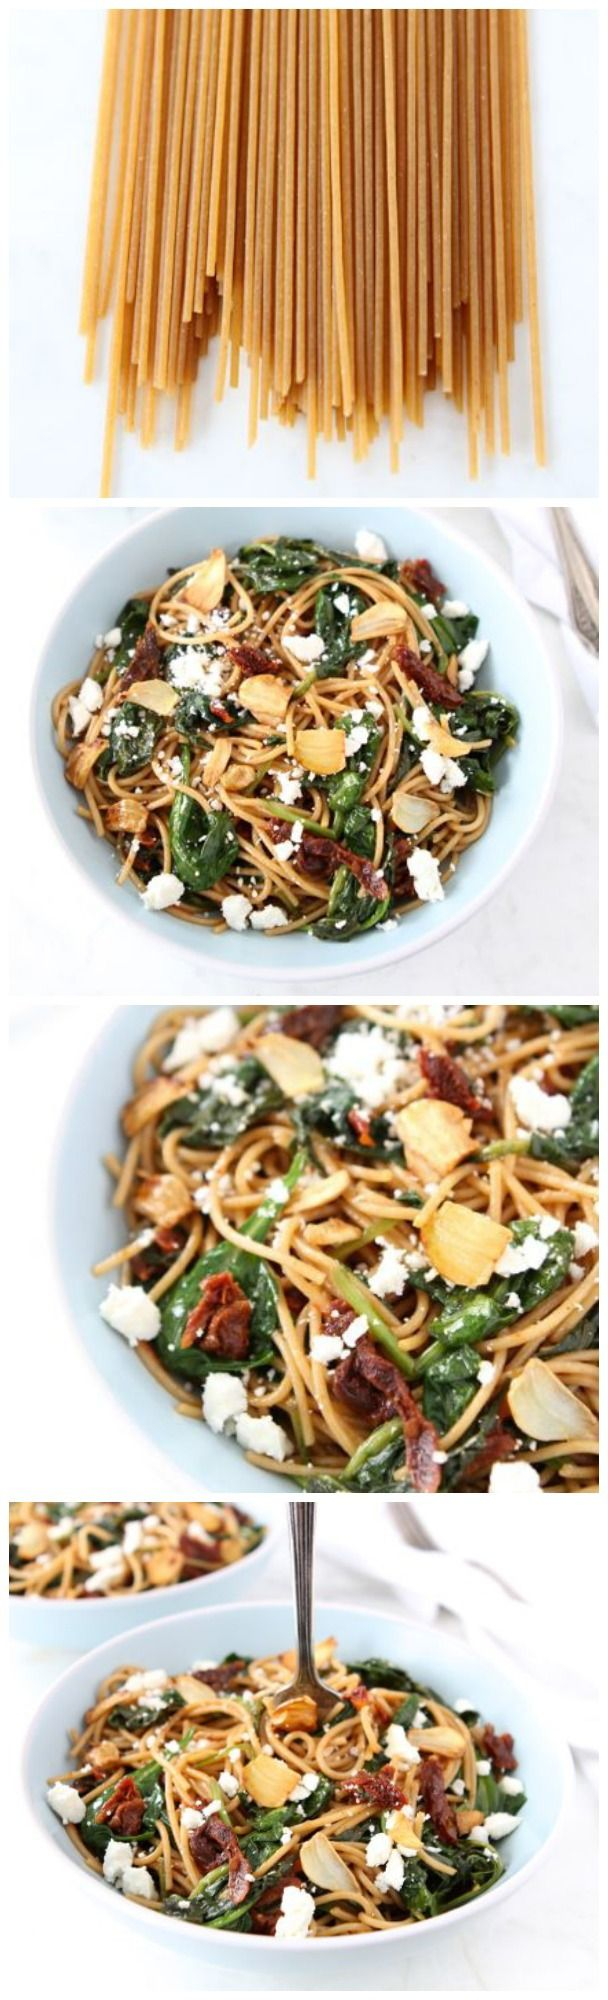 Whole Wheat Spaghetti with Sun Dried Tomatoes and Spinach on twopeasandtheirpod.com Love this simple pasta dish!: Wheat Spaghetti, Sun Dried Tomatoes, Sun Dried Recipes, Spinach Meatlessmonday, Pasta Dishes, Food Pasta, Simple Pasta, Meatless Monday